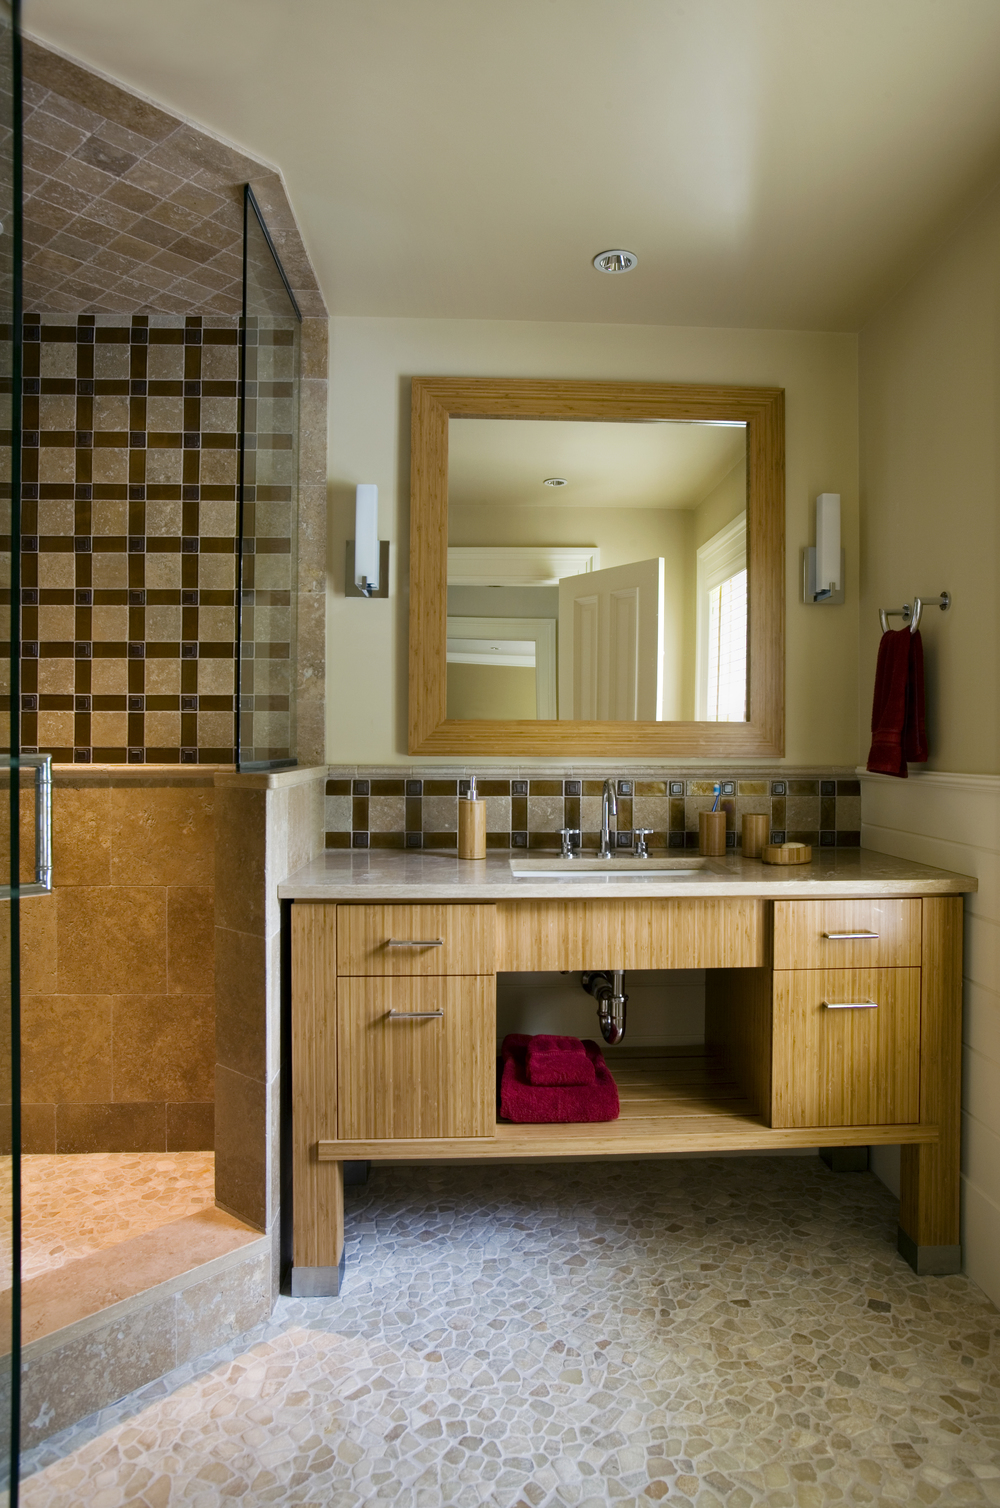 Weston bathroom with shower.jpg